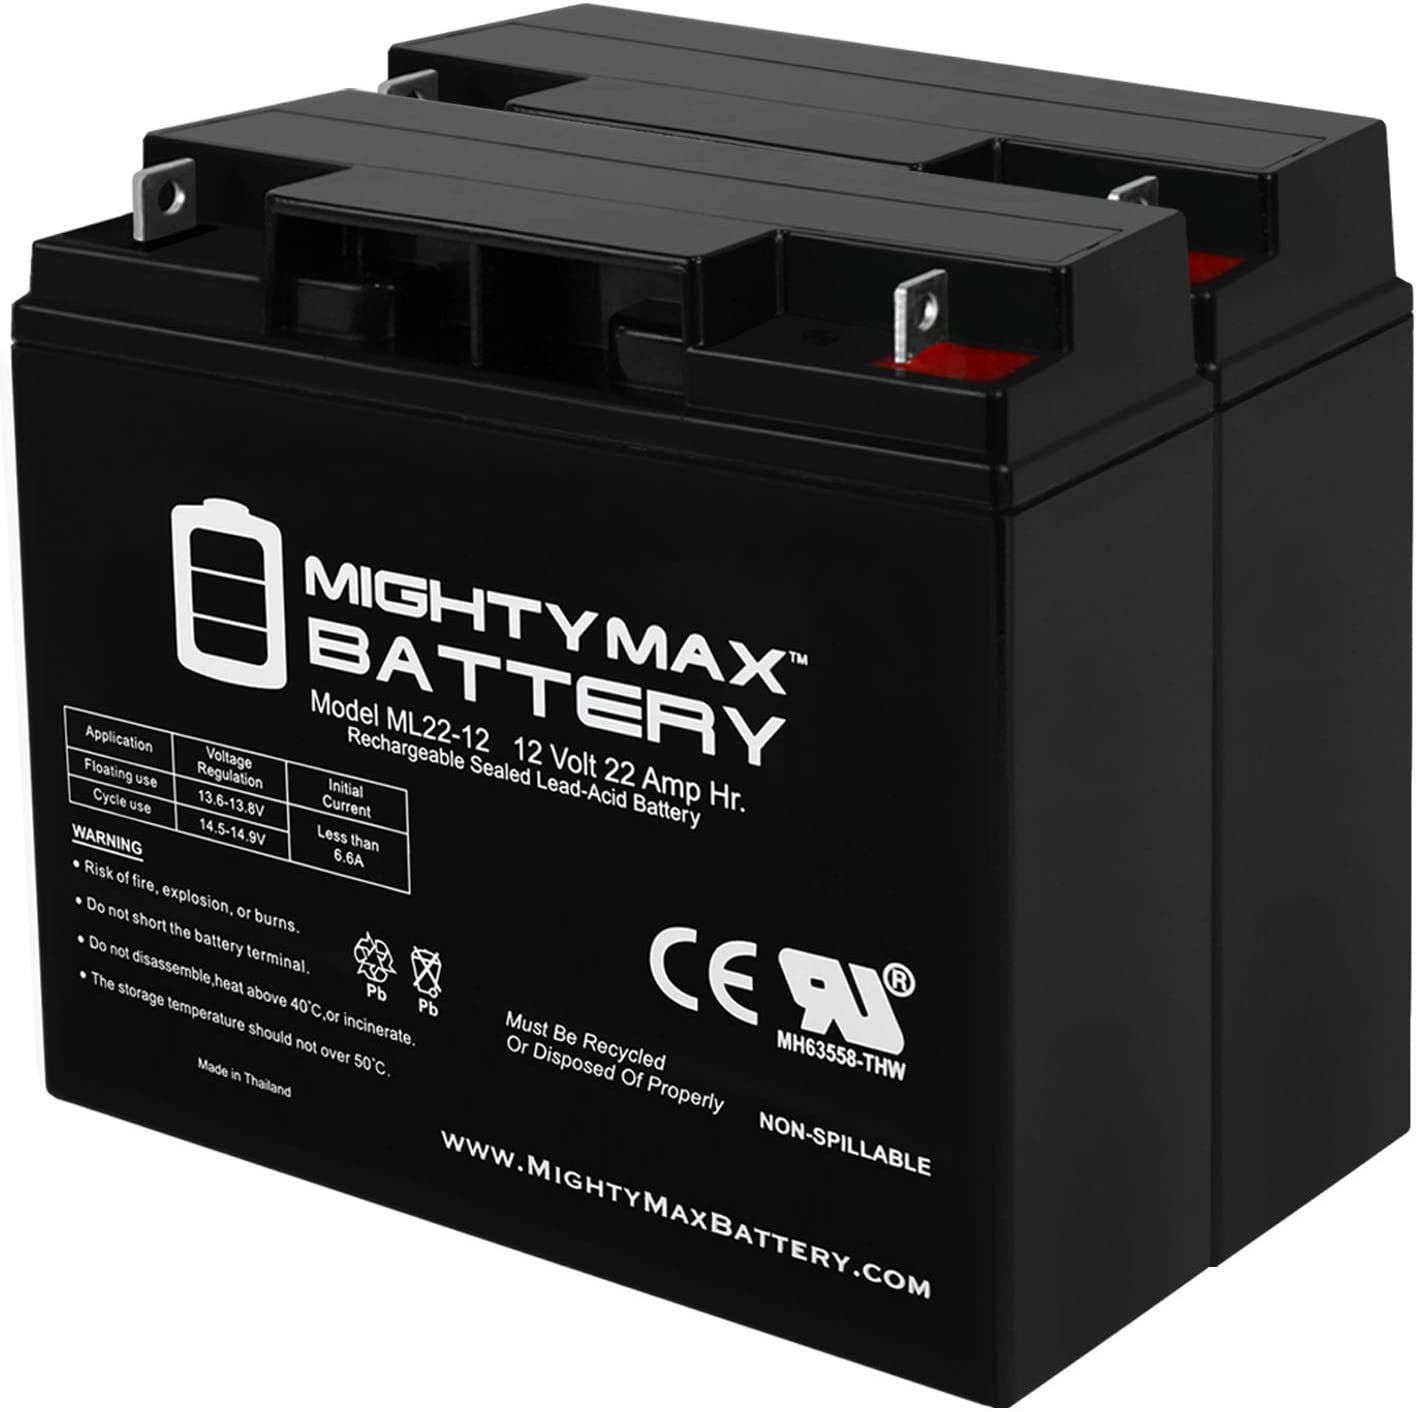 Mighty Max Battery 12V 22AH Ranking TOP6 SLA Max 68% OFF for Smart APC Compatible